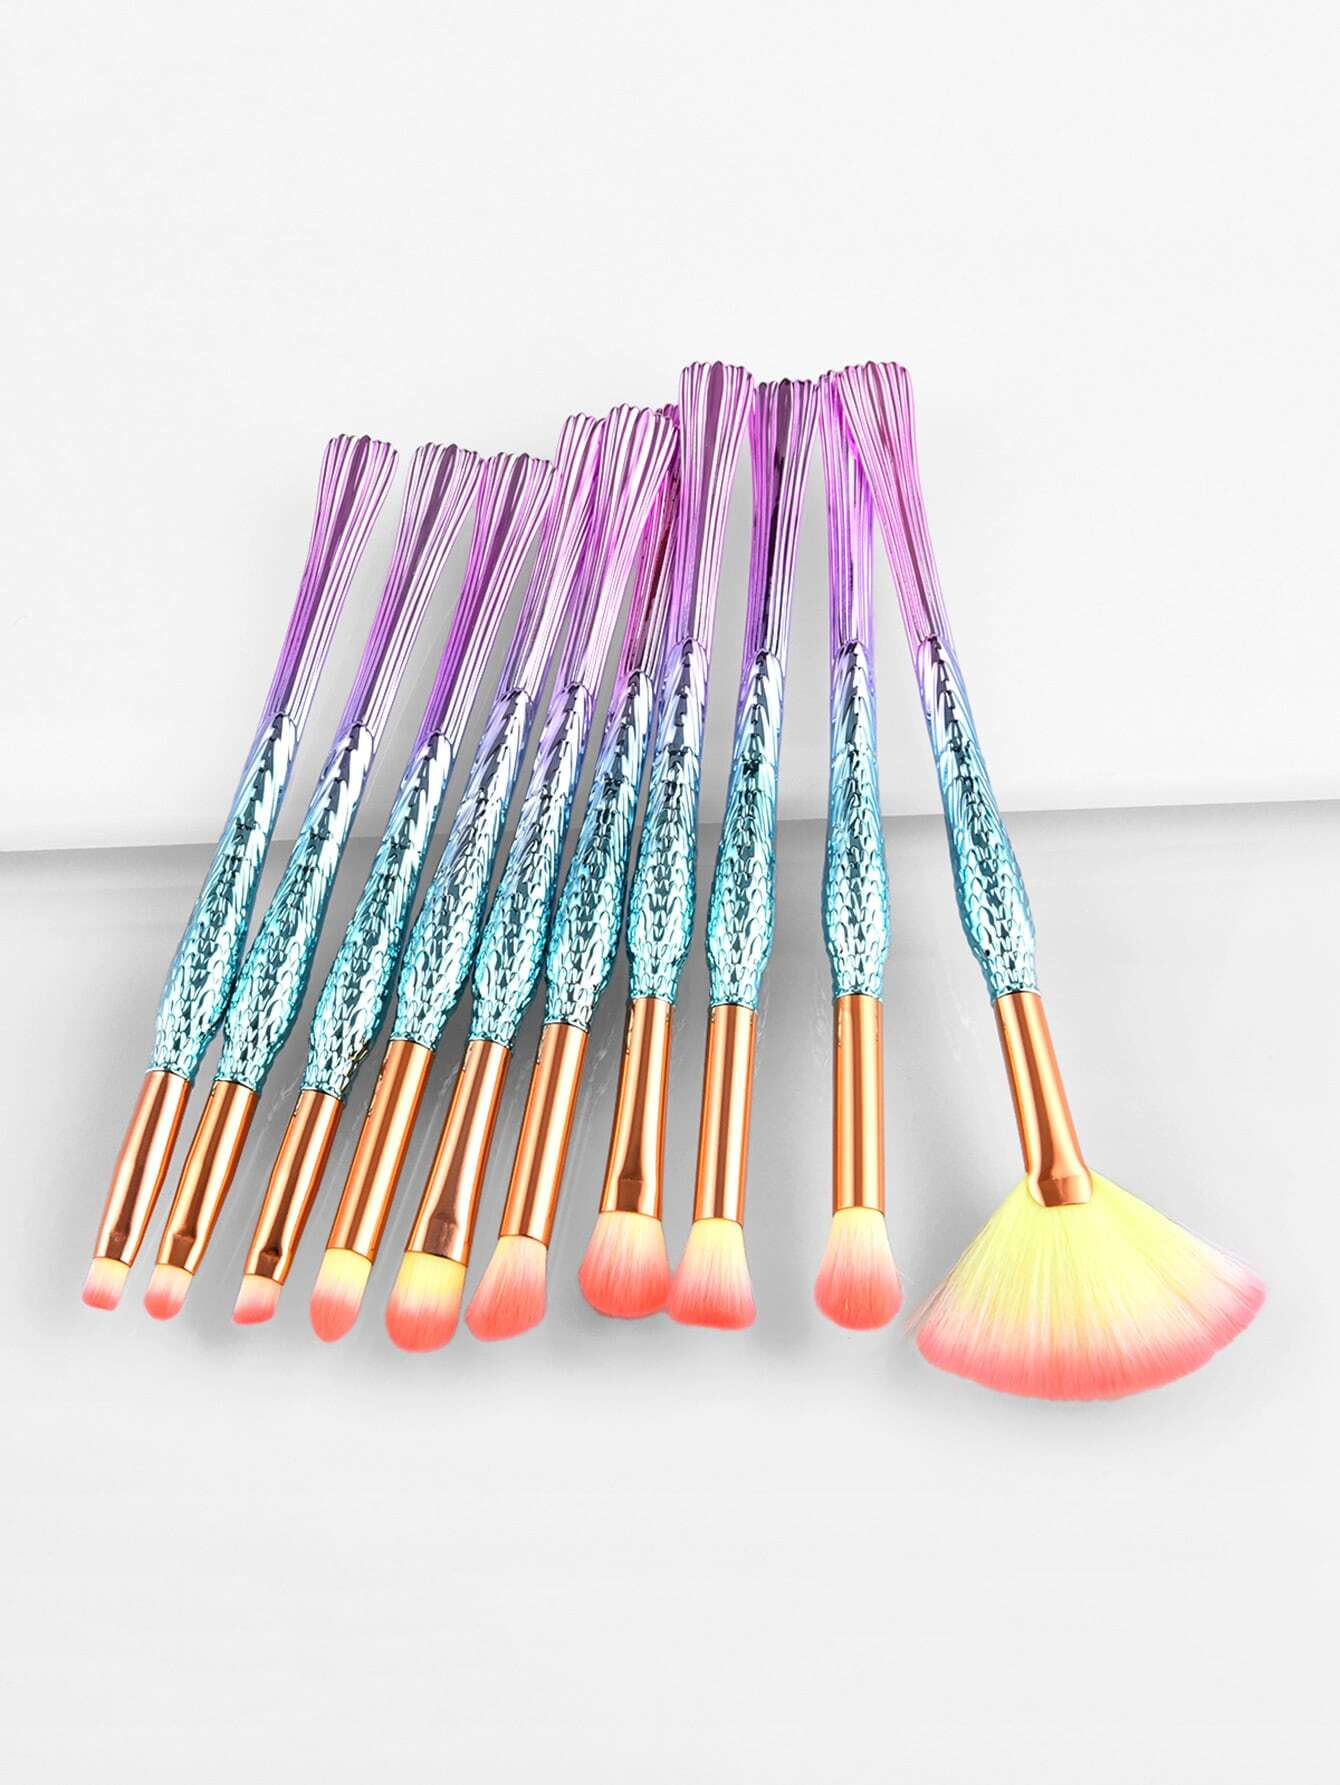 Image of Ombre Handle Makeup Brush 7pcs